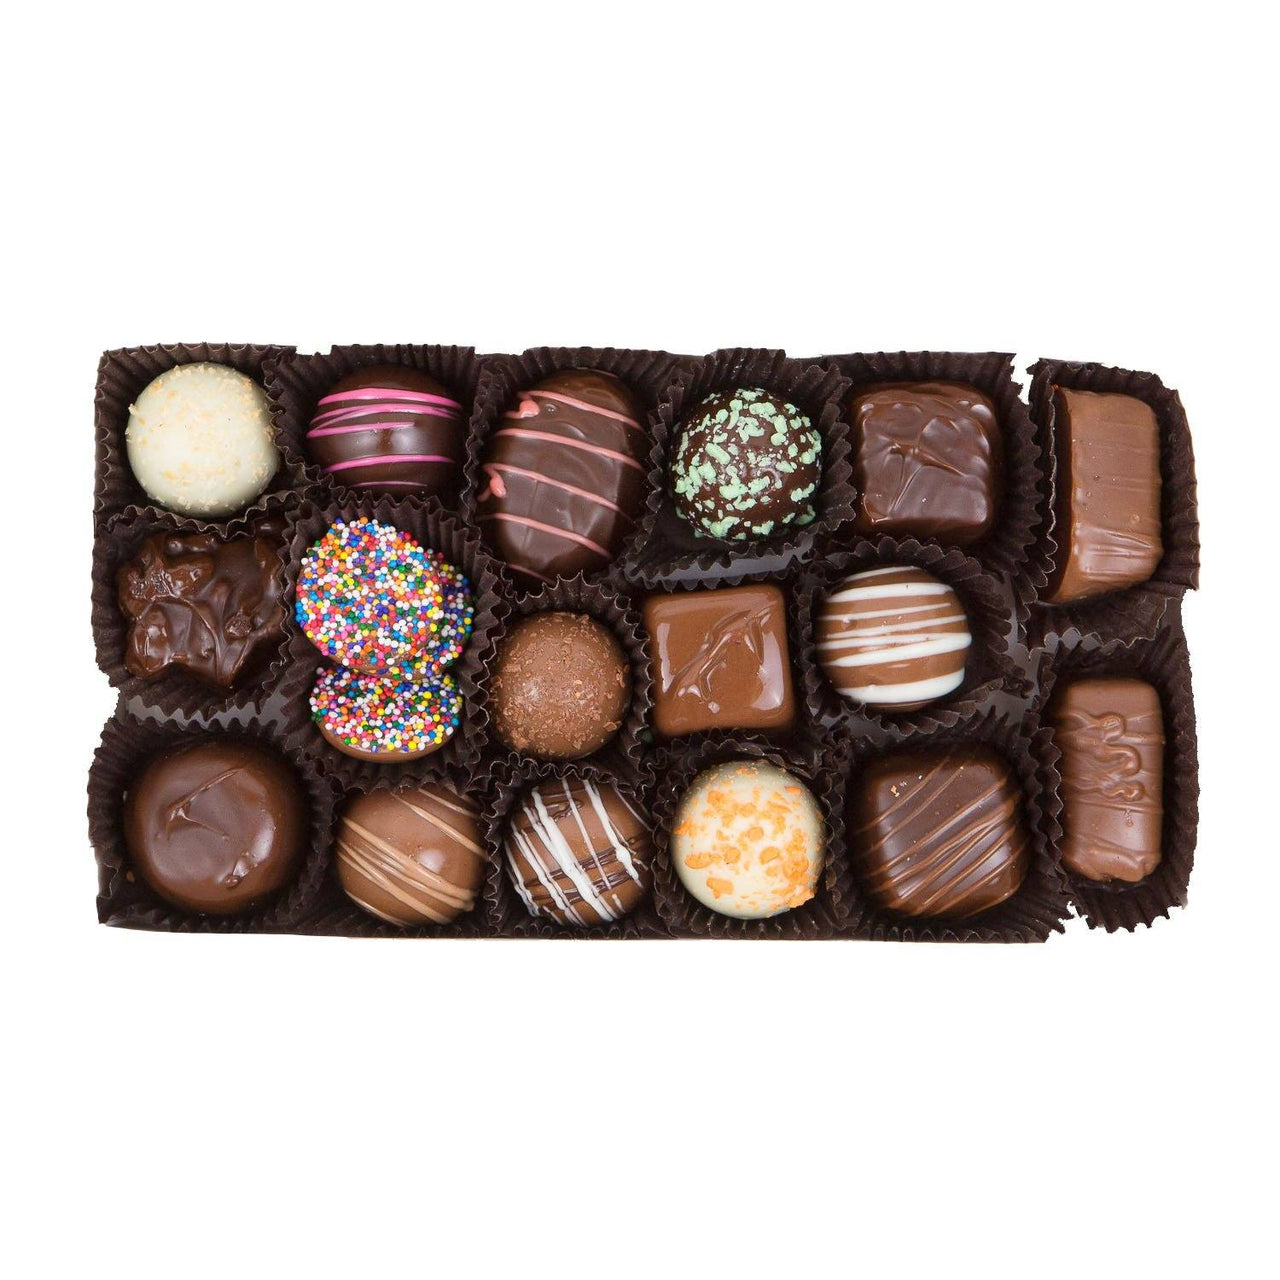 White Elephant Gifts - Assorted Chocolate Gift Box - Jackie's Chocolate (1487132000291)